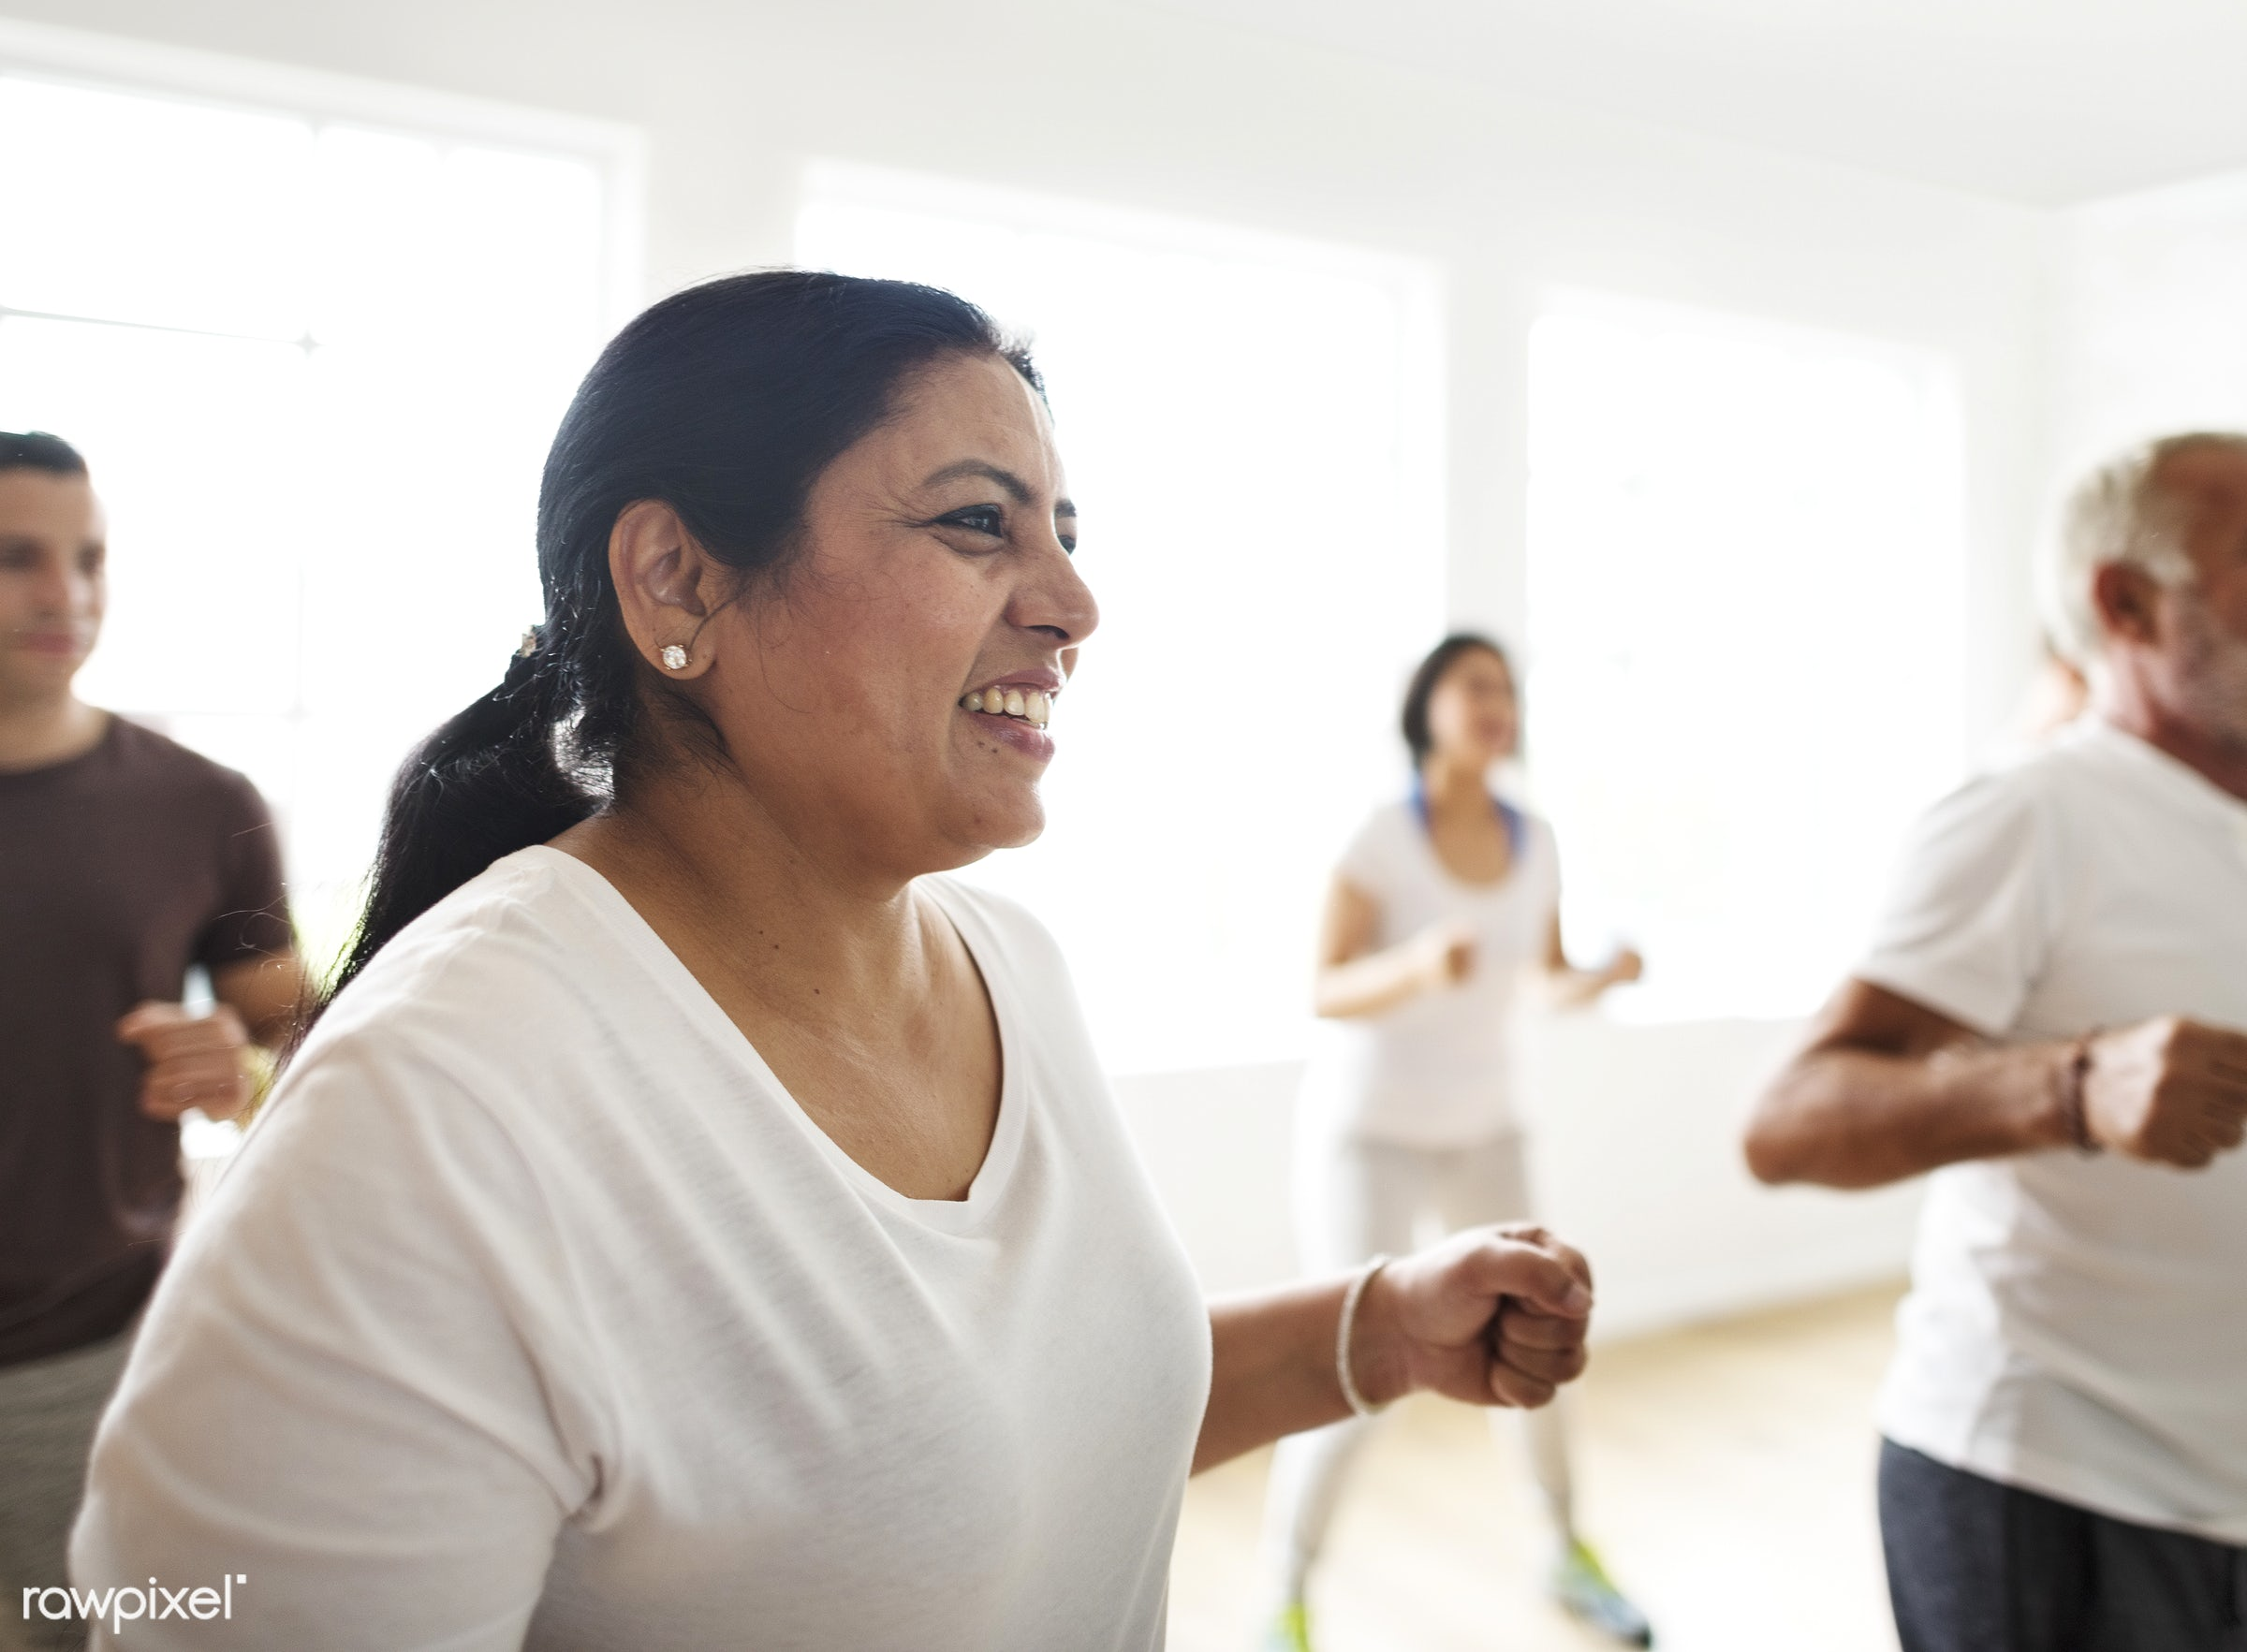 Closeup of an happy Indian woman in an excercise class - respiration, physical, diverse, relax, variation, recreation,...